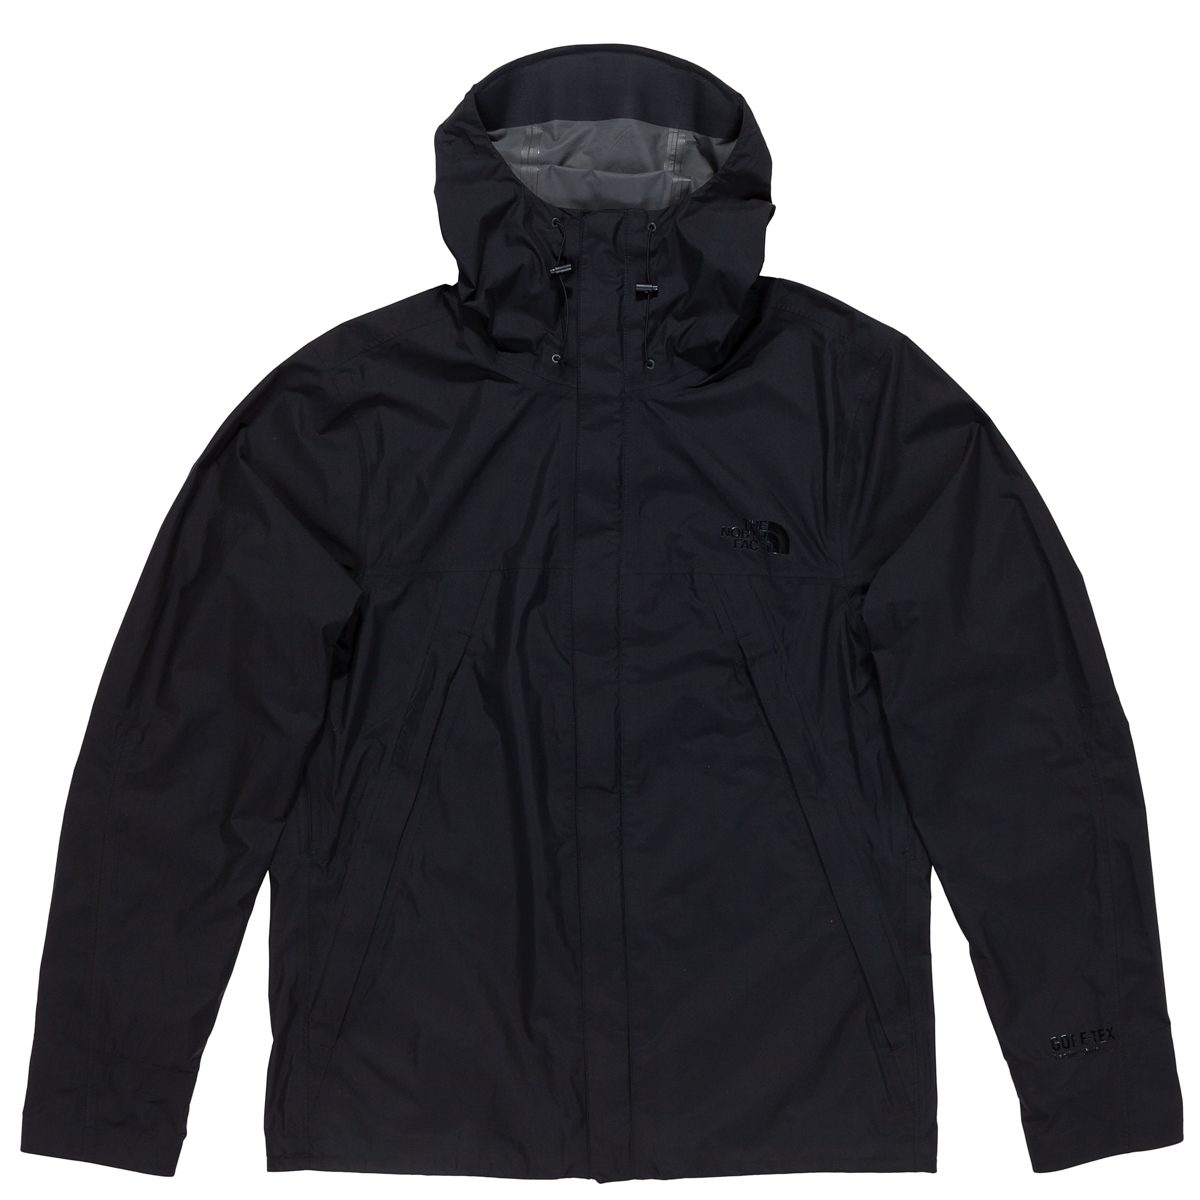 THE-NORTH-FACE-M1990-MOUNTAIN-JACKET-BLACK2.jpg